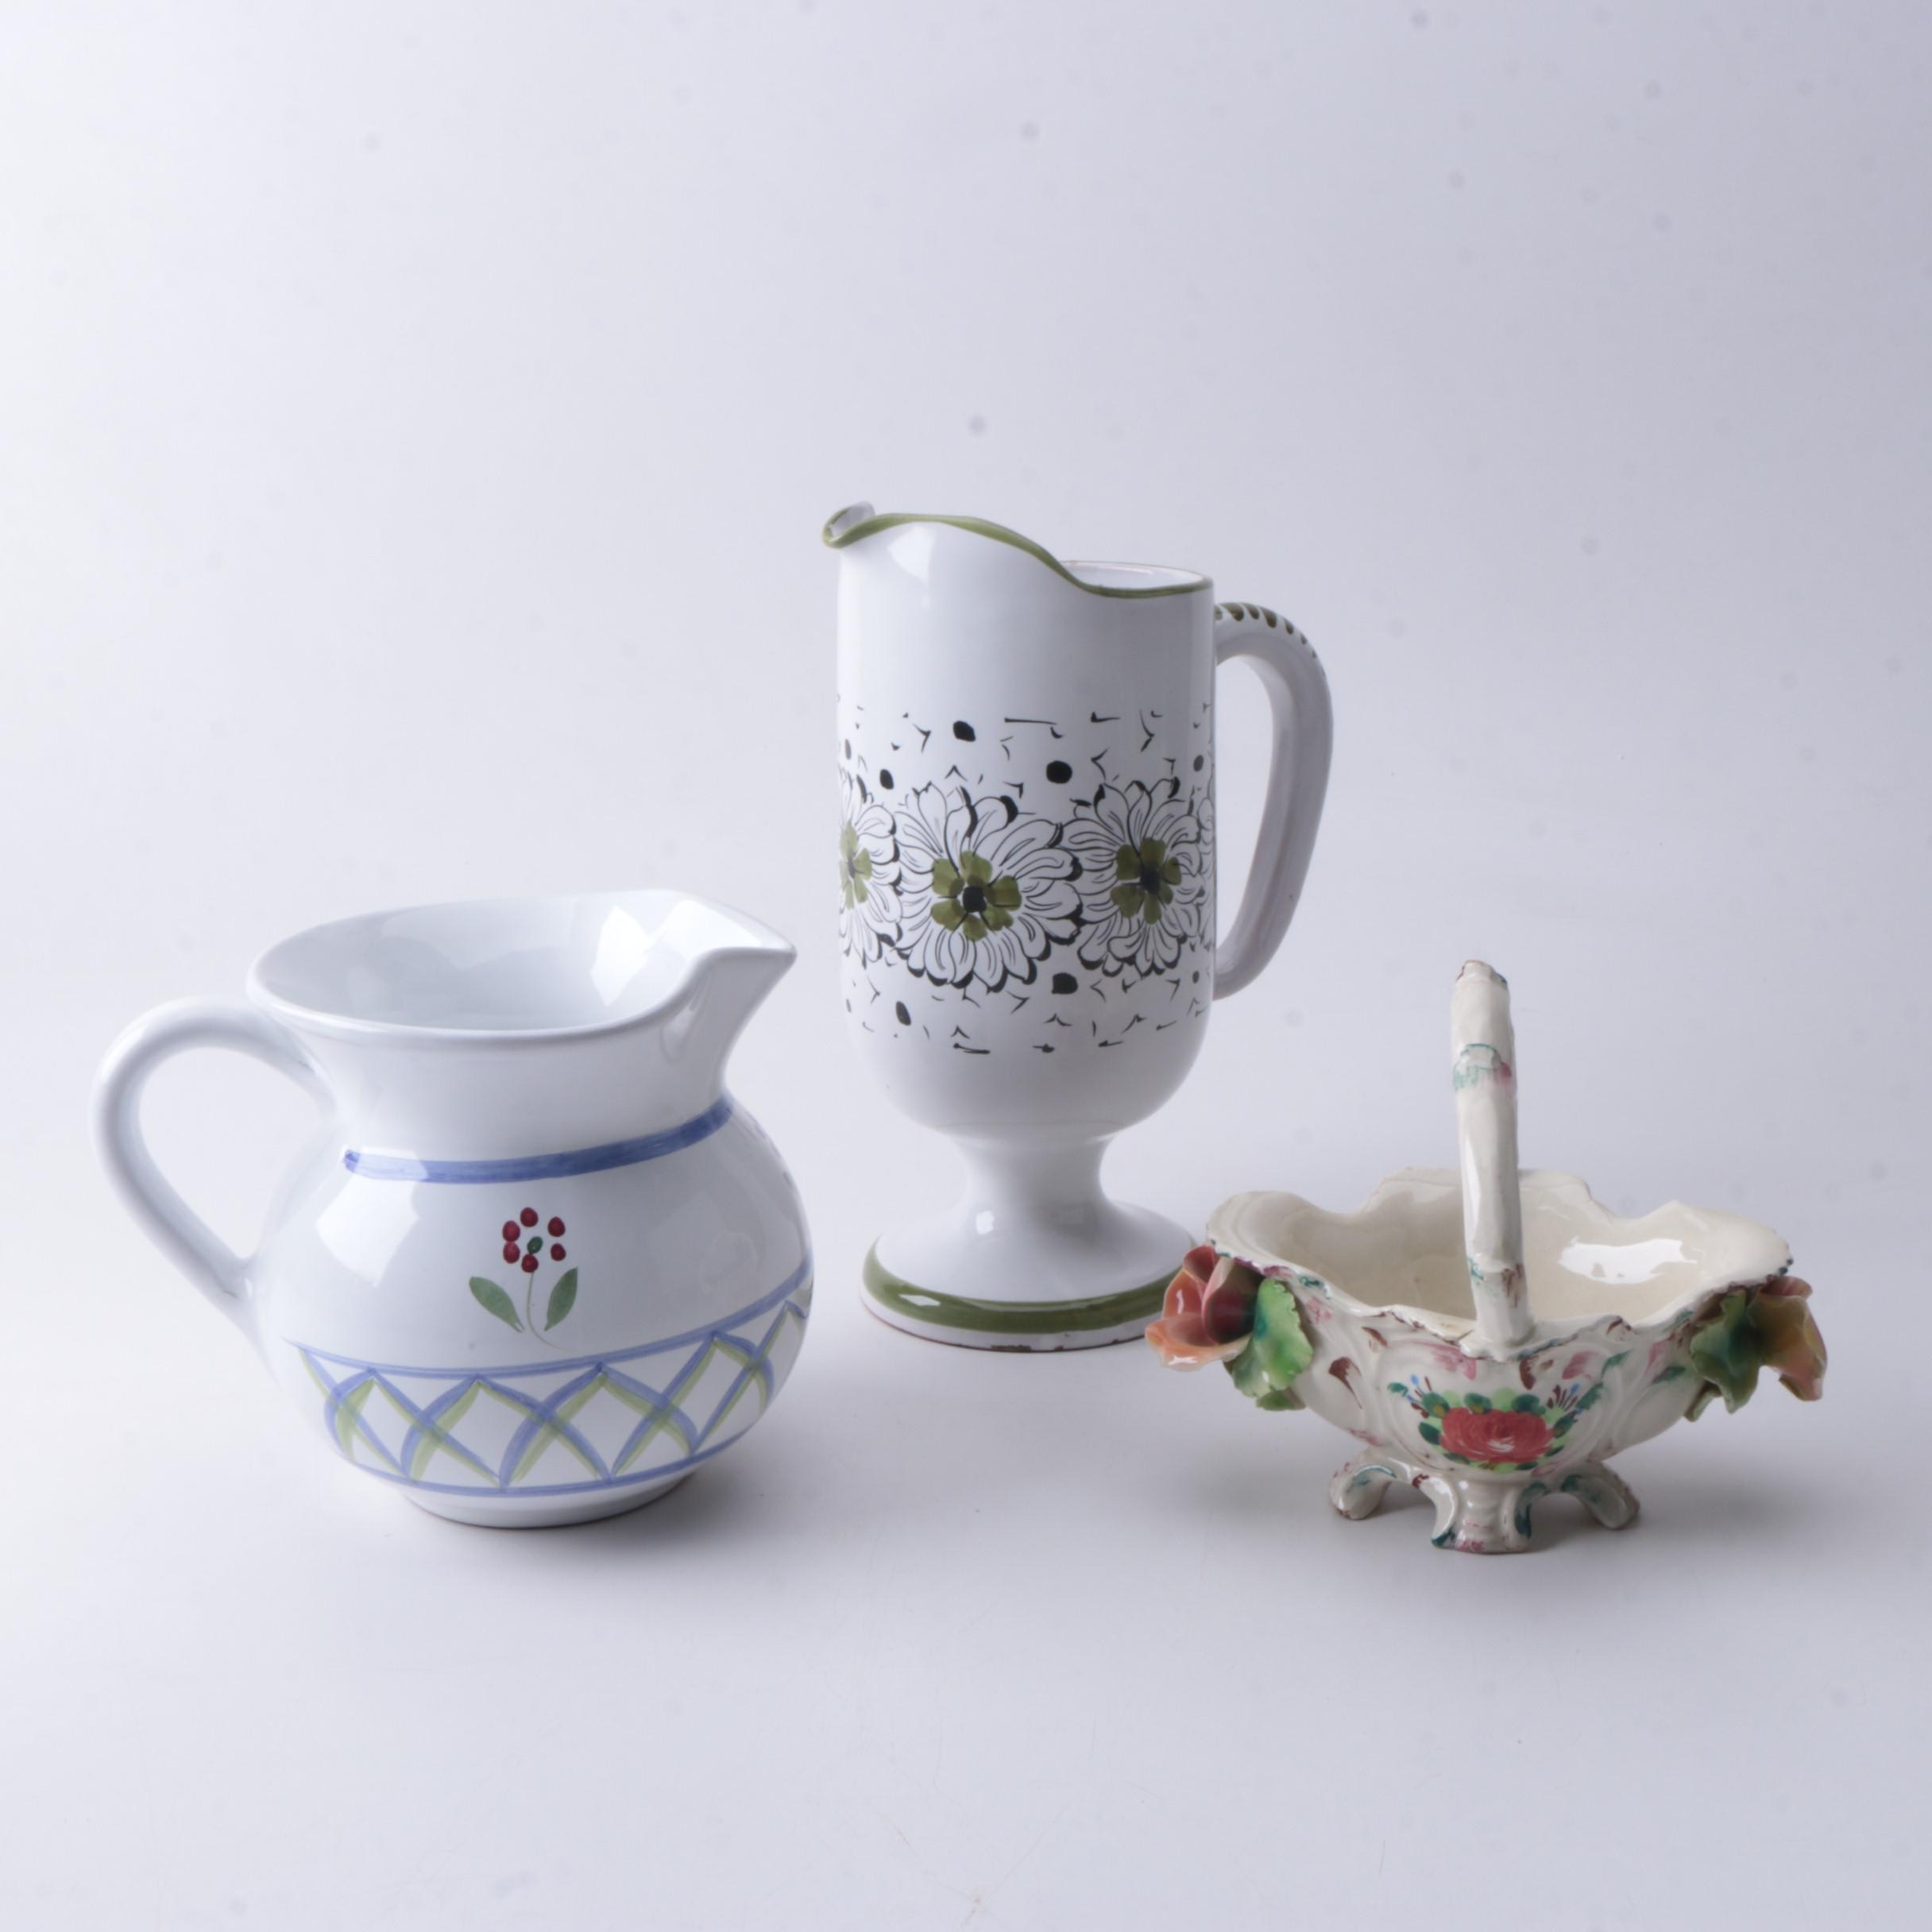 Italian Porcelain Tableware and Dishes